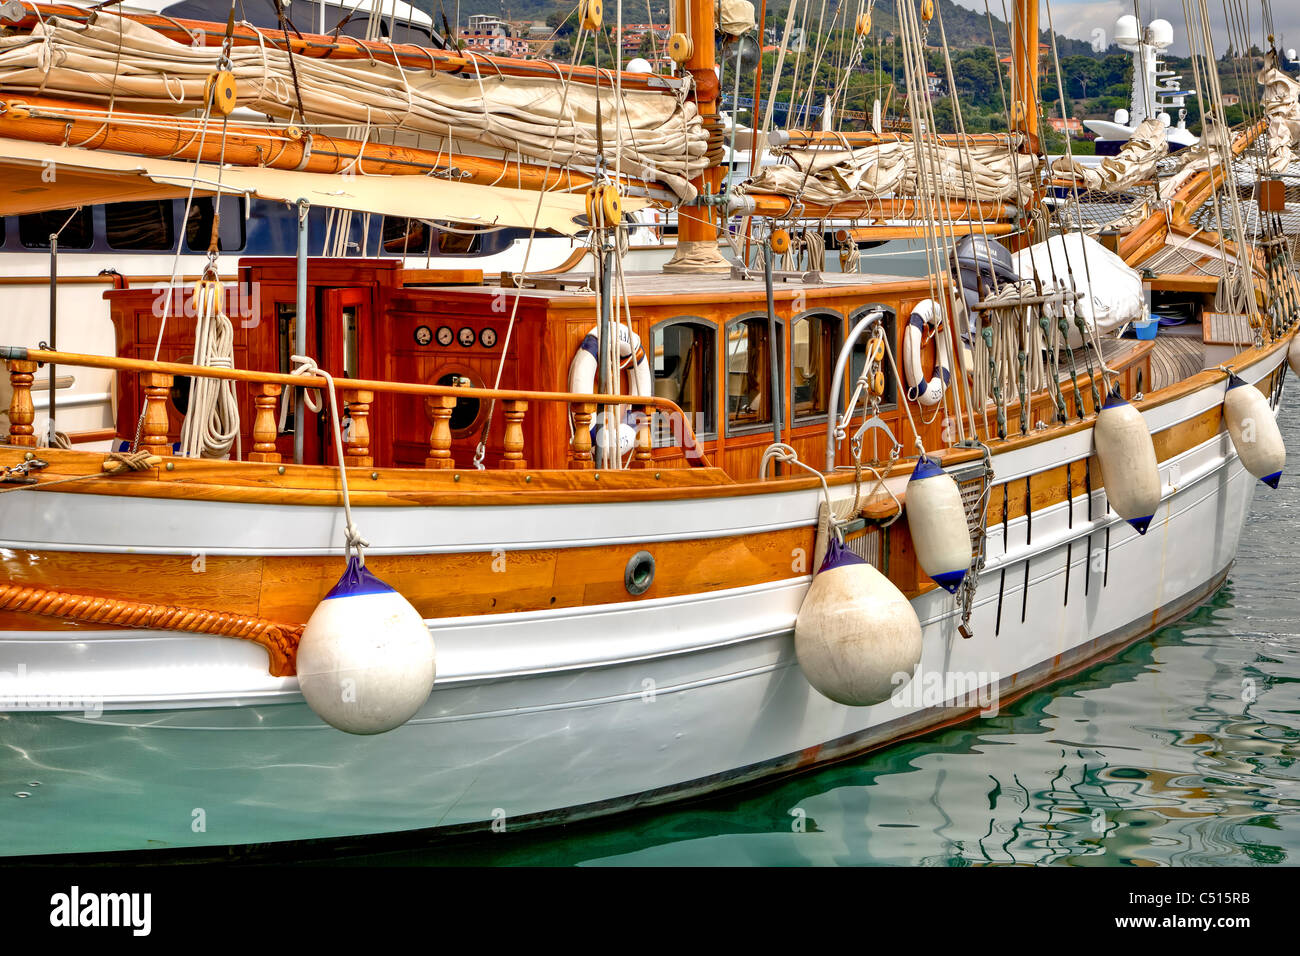 an old sailing boat in the harbor of Porto Maurizio - Imperia - Liguria - Italy - Stock Image